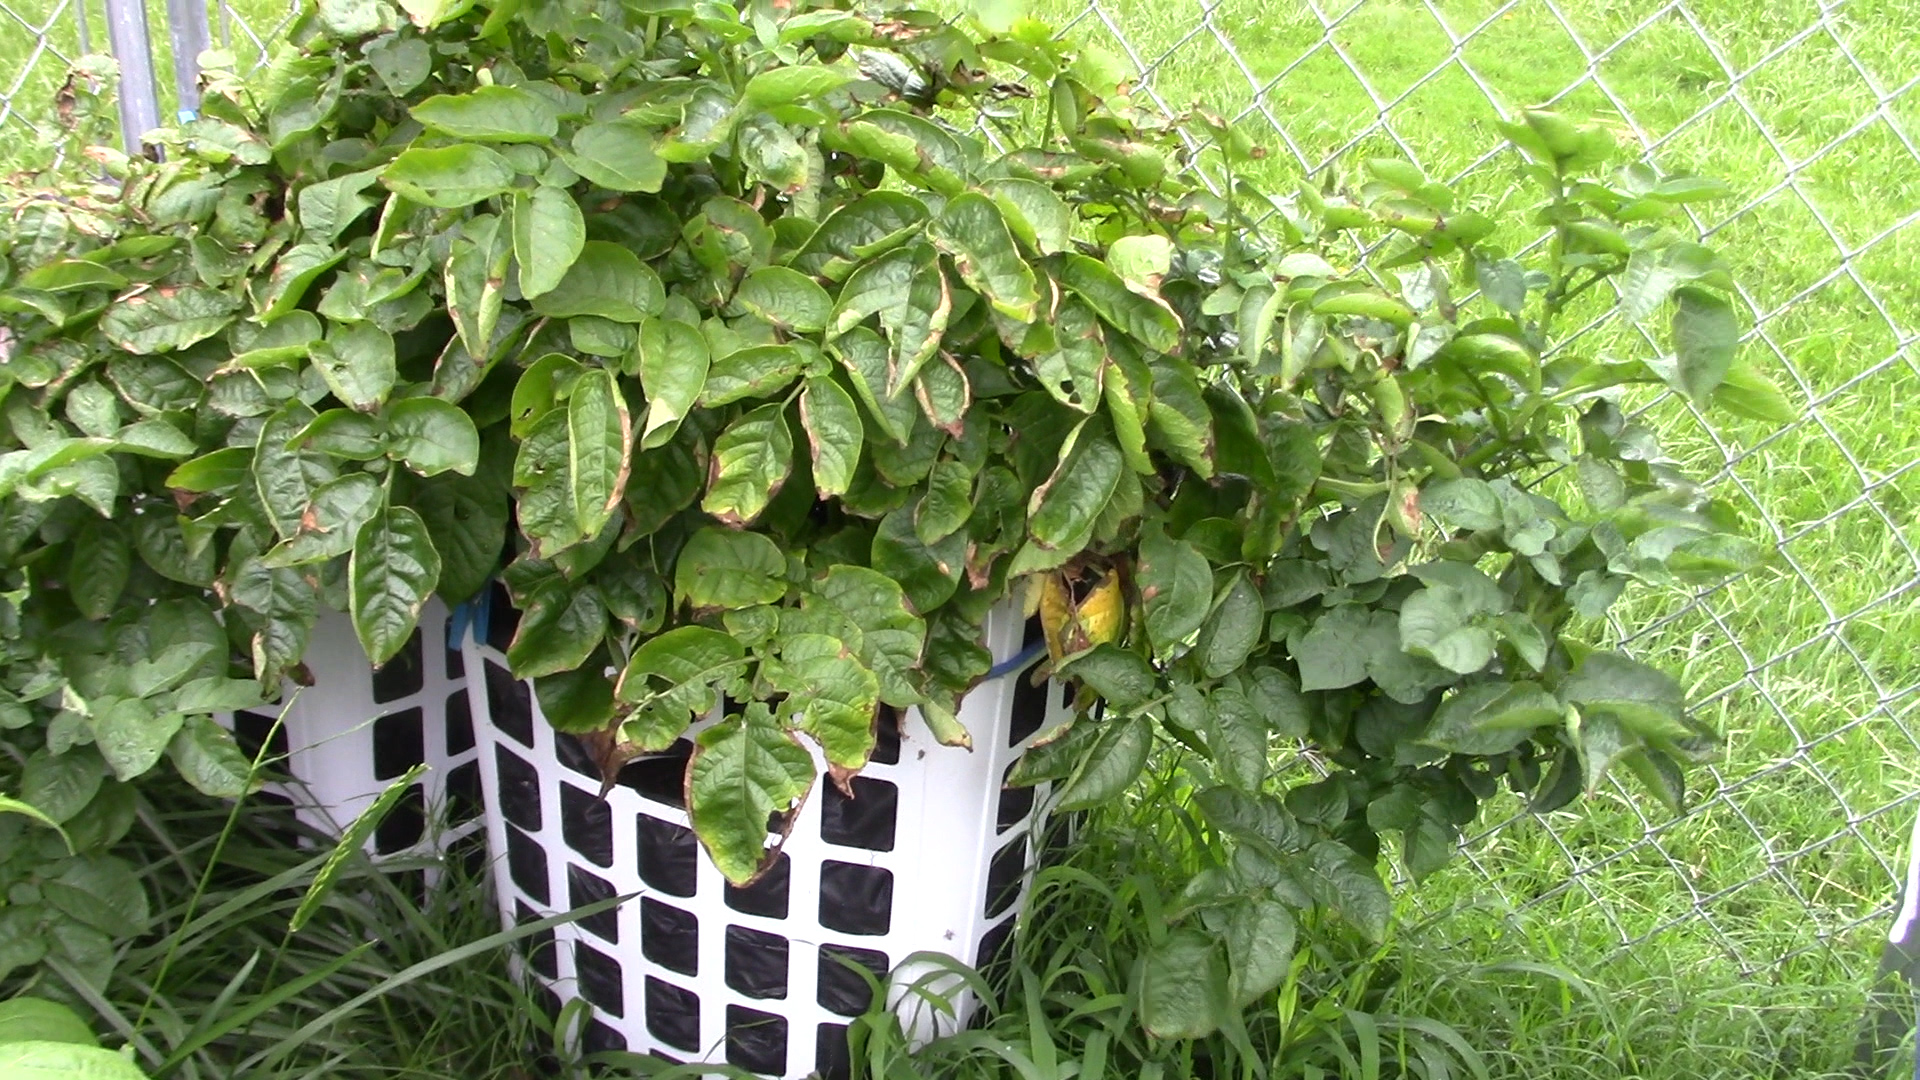 Update On Her Potatoes She Grows In Laundry Baskets A Container Garden Tour